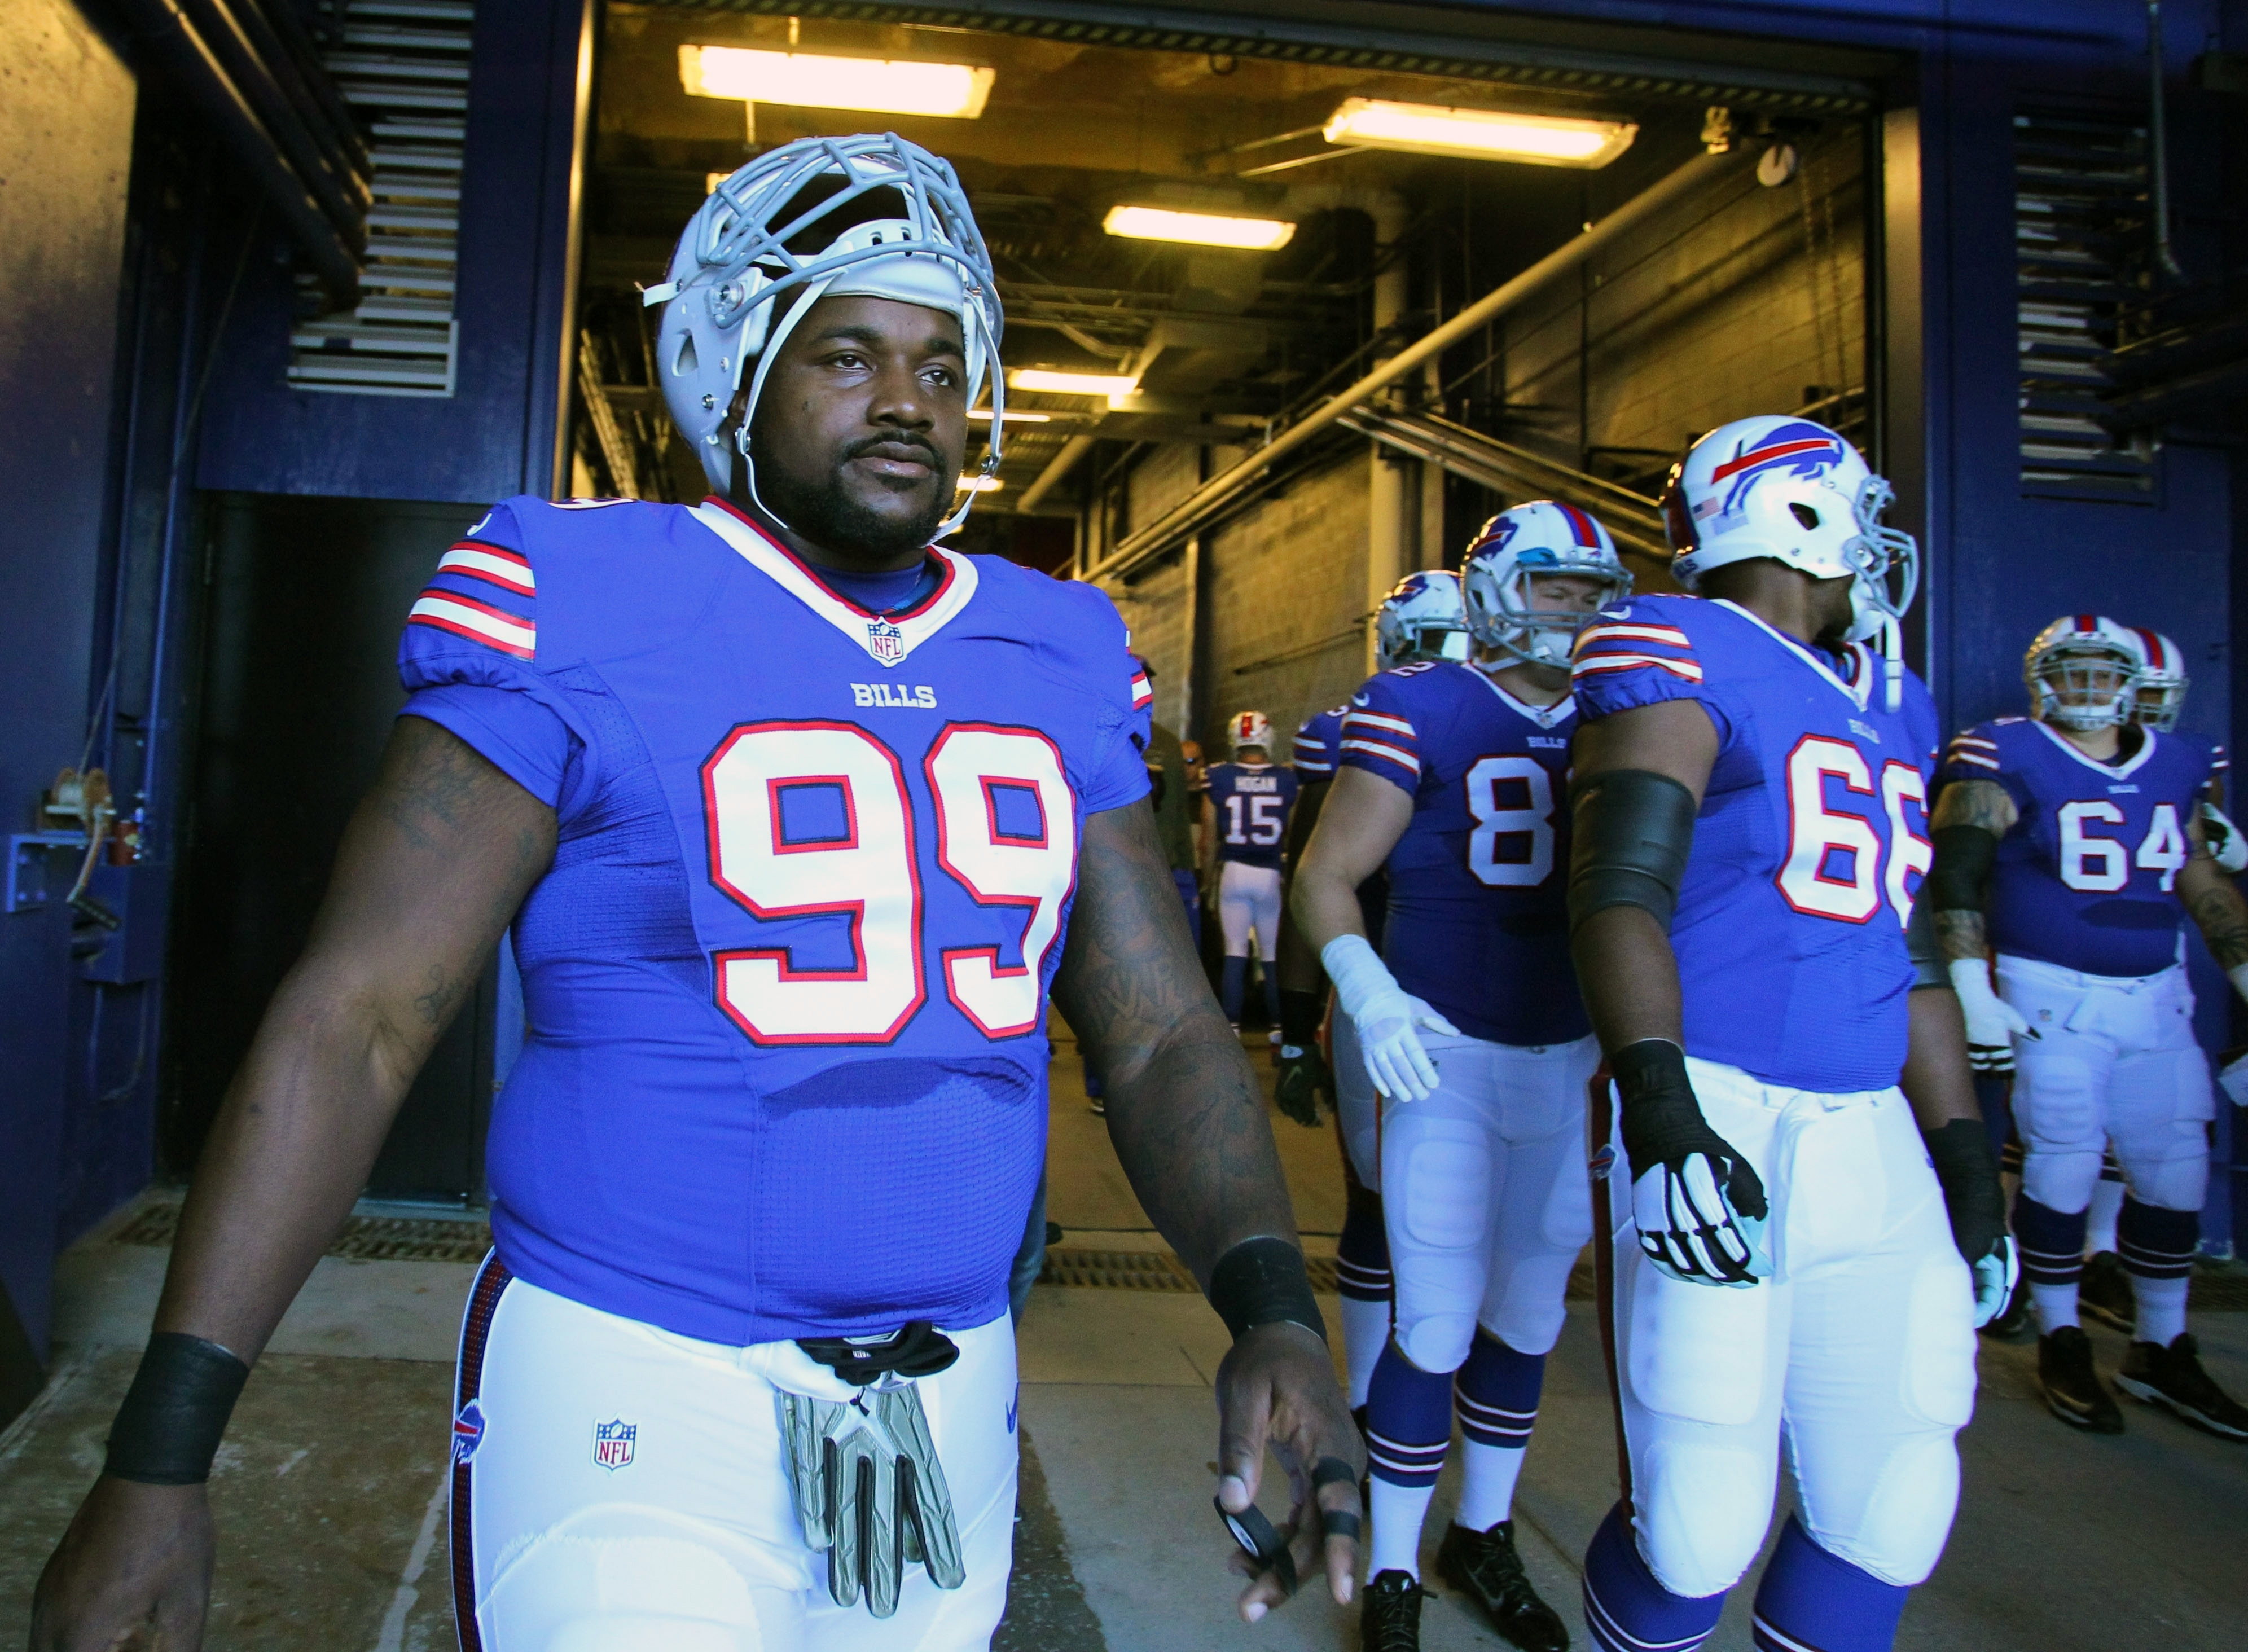 FILE - In this Nov. 8, 2015, file photo, Buffalo Bills defensive tackle Marcell Dareus (99) heads to the field before playing the Miami Dolphins in an NFL football game, in Orchard Park, N.Y.  Bills star defensive tackle Marcell Dareus returns to practice